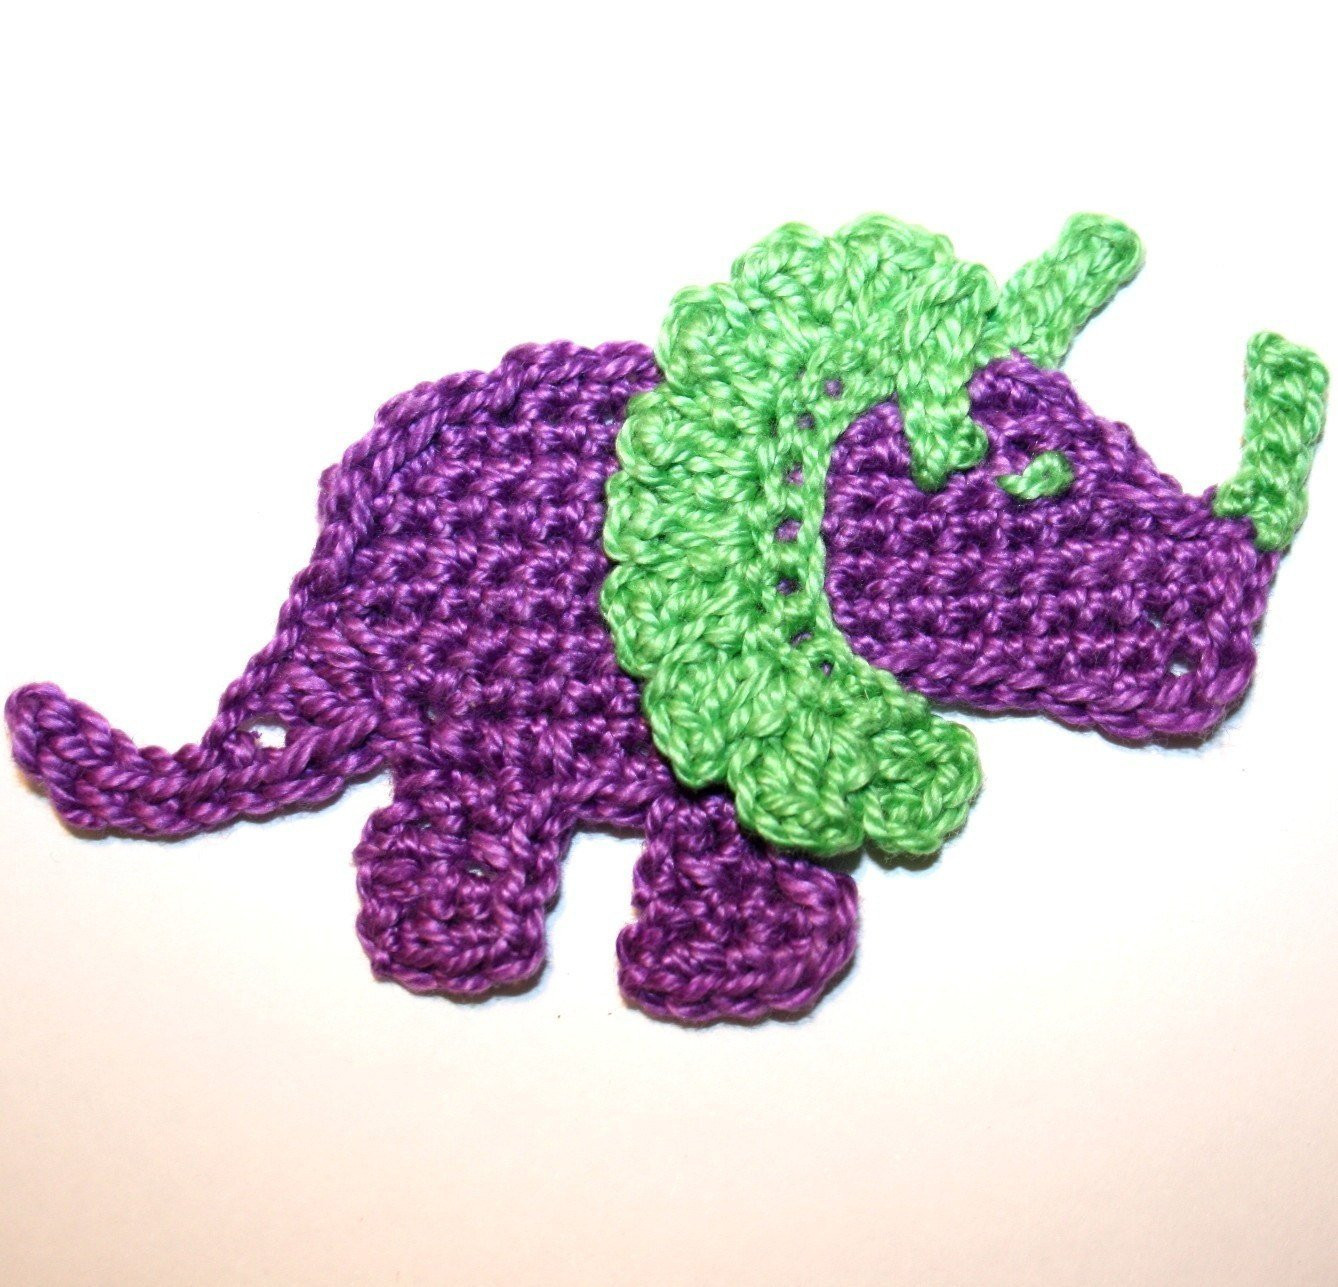 Triceratops Crochet Pattern Free Awesome Pattern Crochet Triceratops Pdf Of Brilliant 41 Pictures Triceratops Crochet Pattern Free